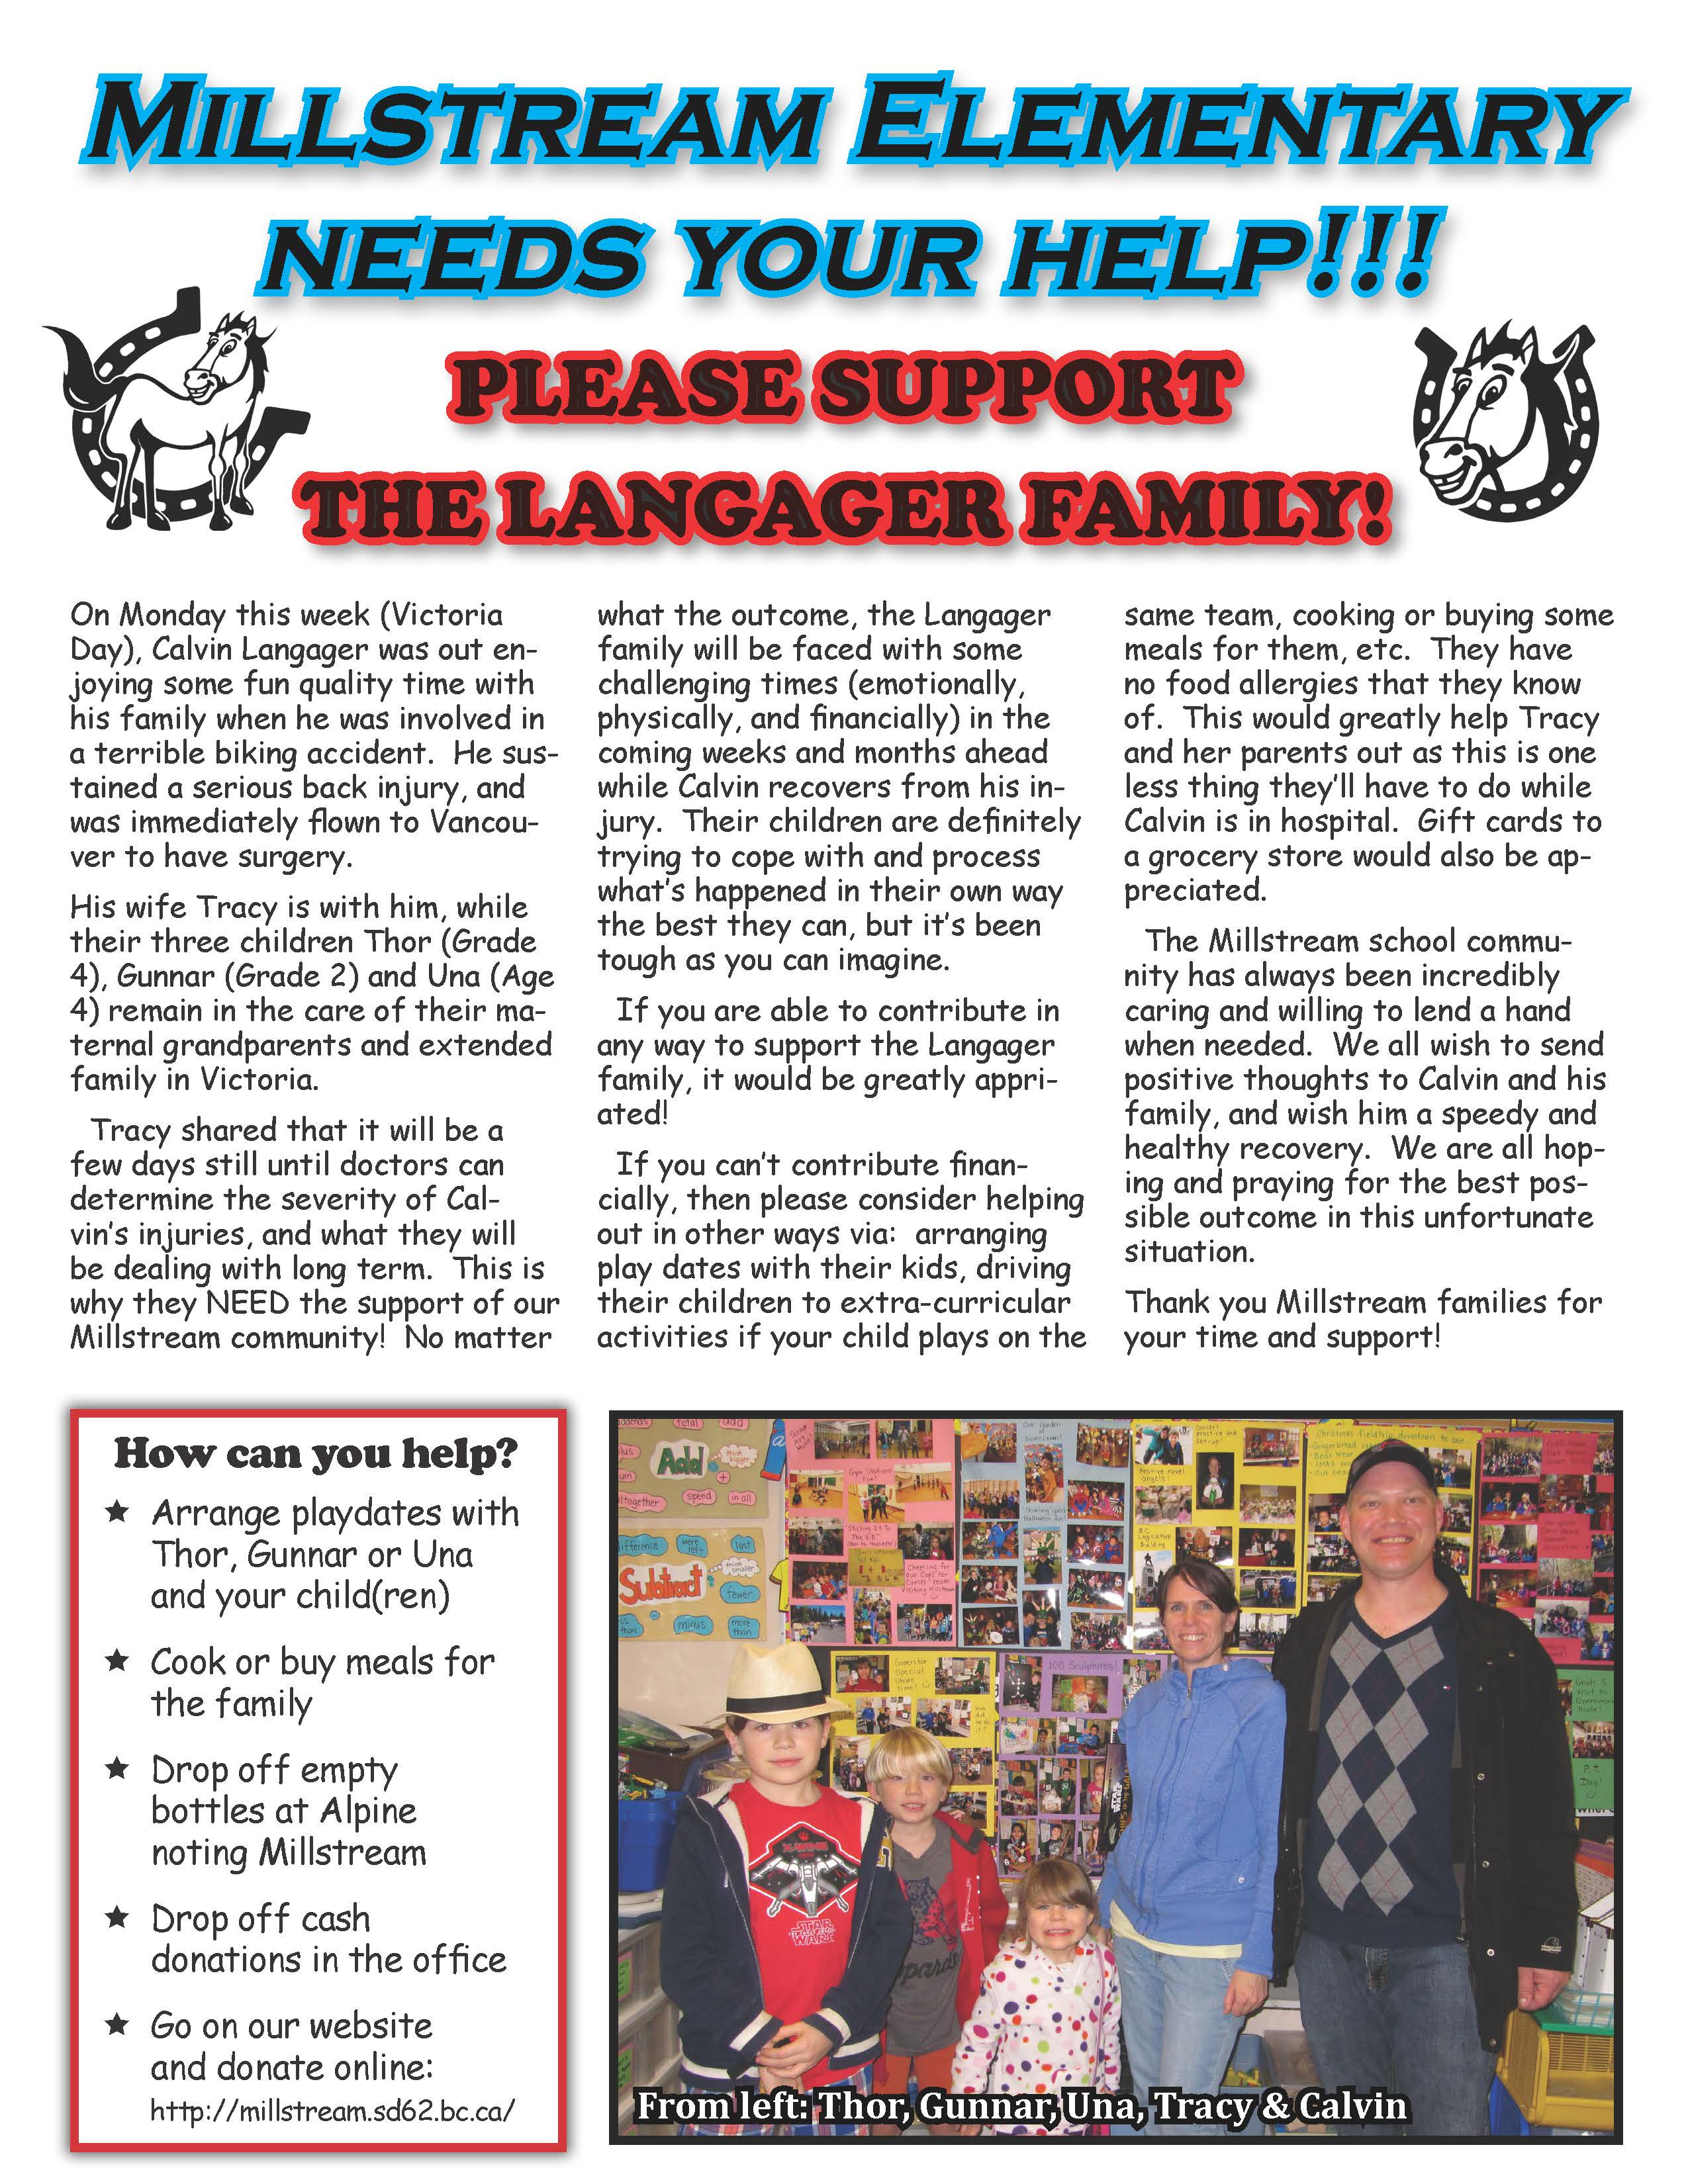 Please Support the Langager Family!